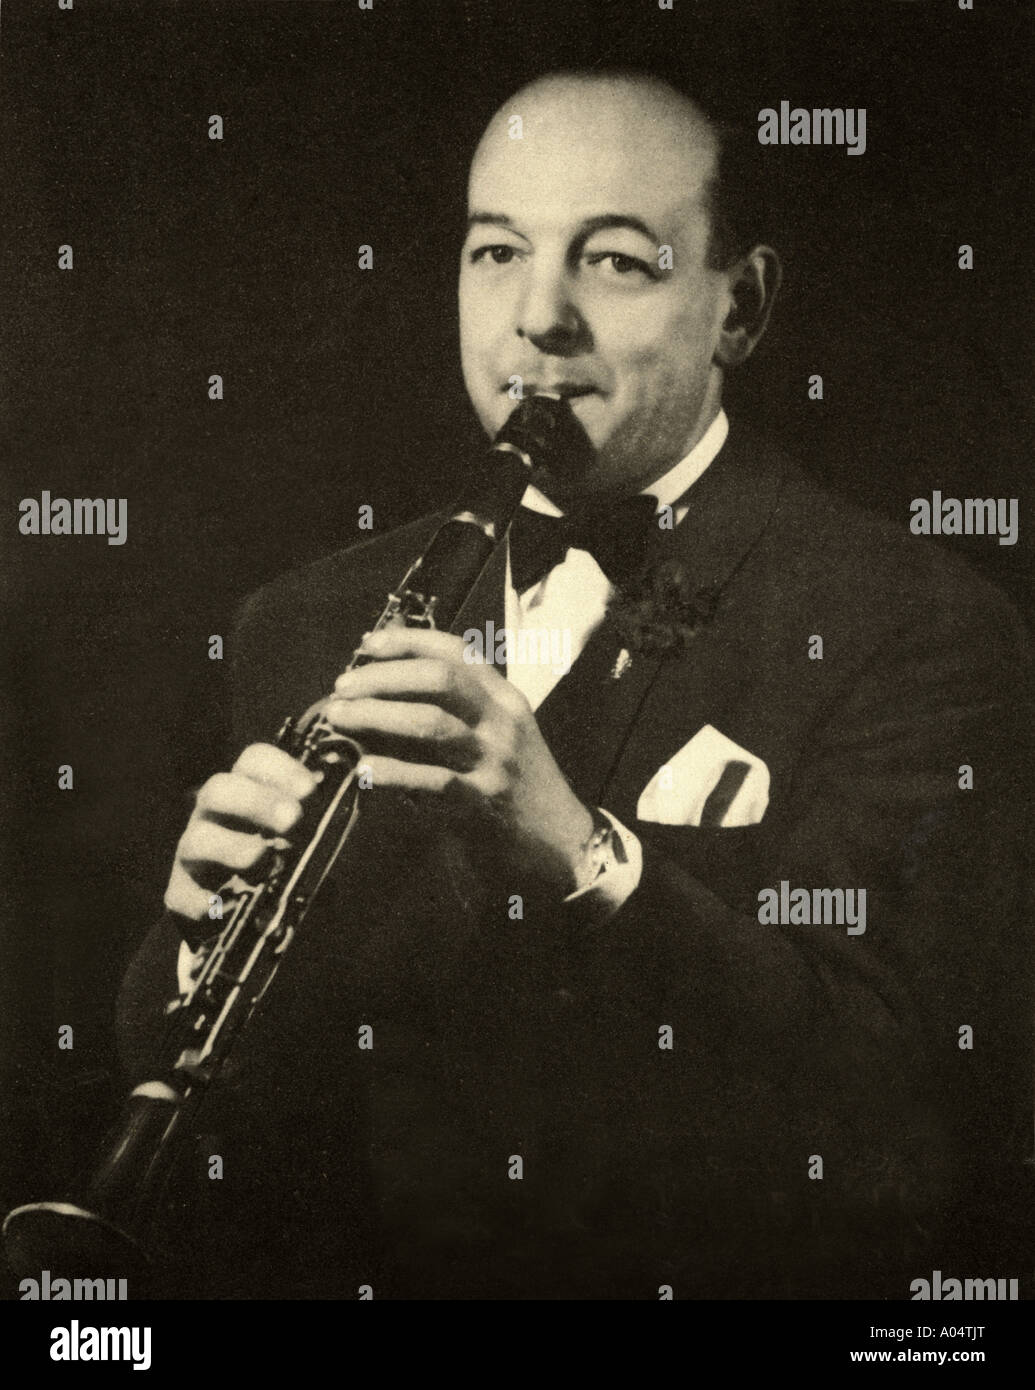 SID PHILLIPS UK jazz musician and composer 1907 to 1973 - Stock Image